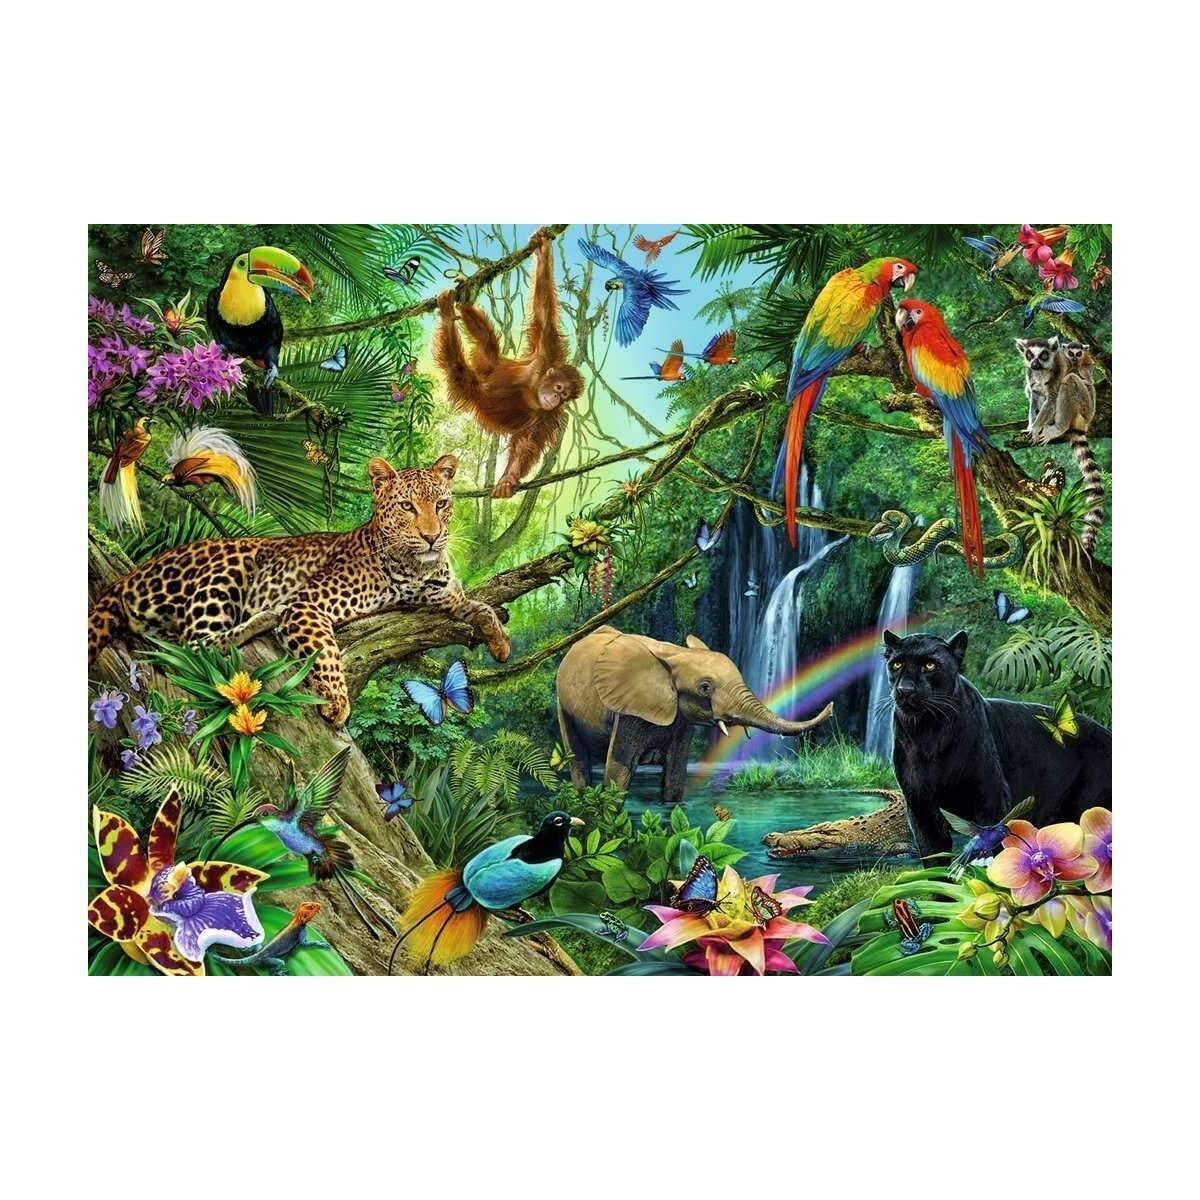 DIY 5D Square Full Drill Art, Diamond Painting Kits Adults Kids, Home Wall Decor, Perfect for Relaxation, Gift (Jungle, Animal Kingdom) by NUBIY